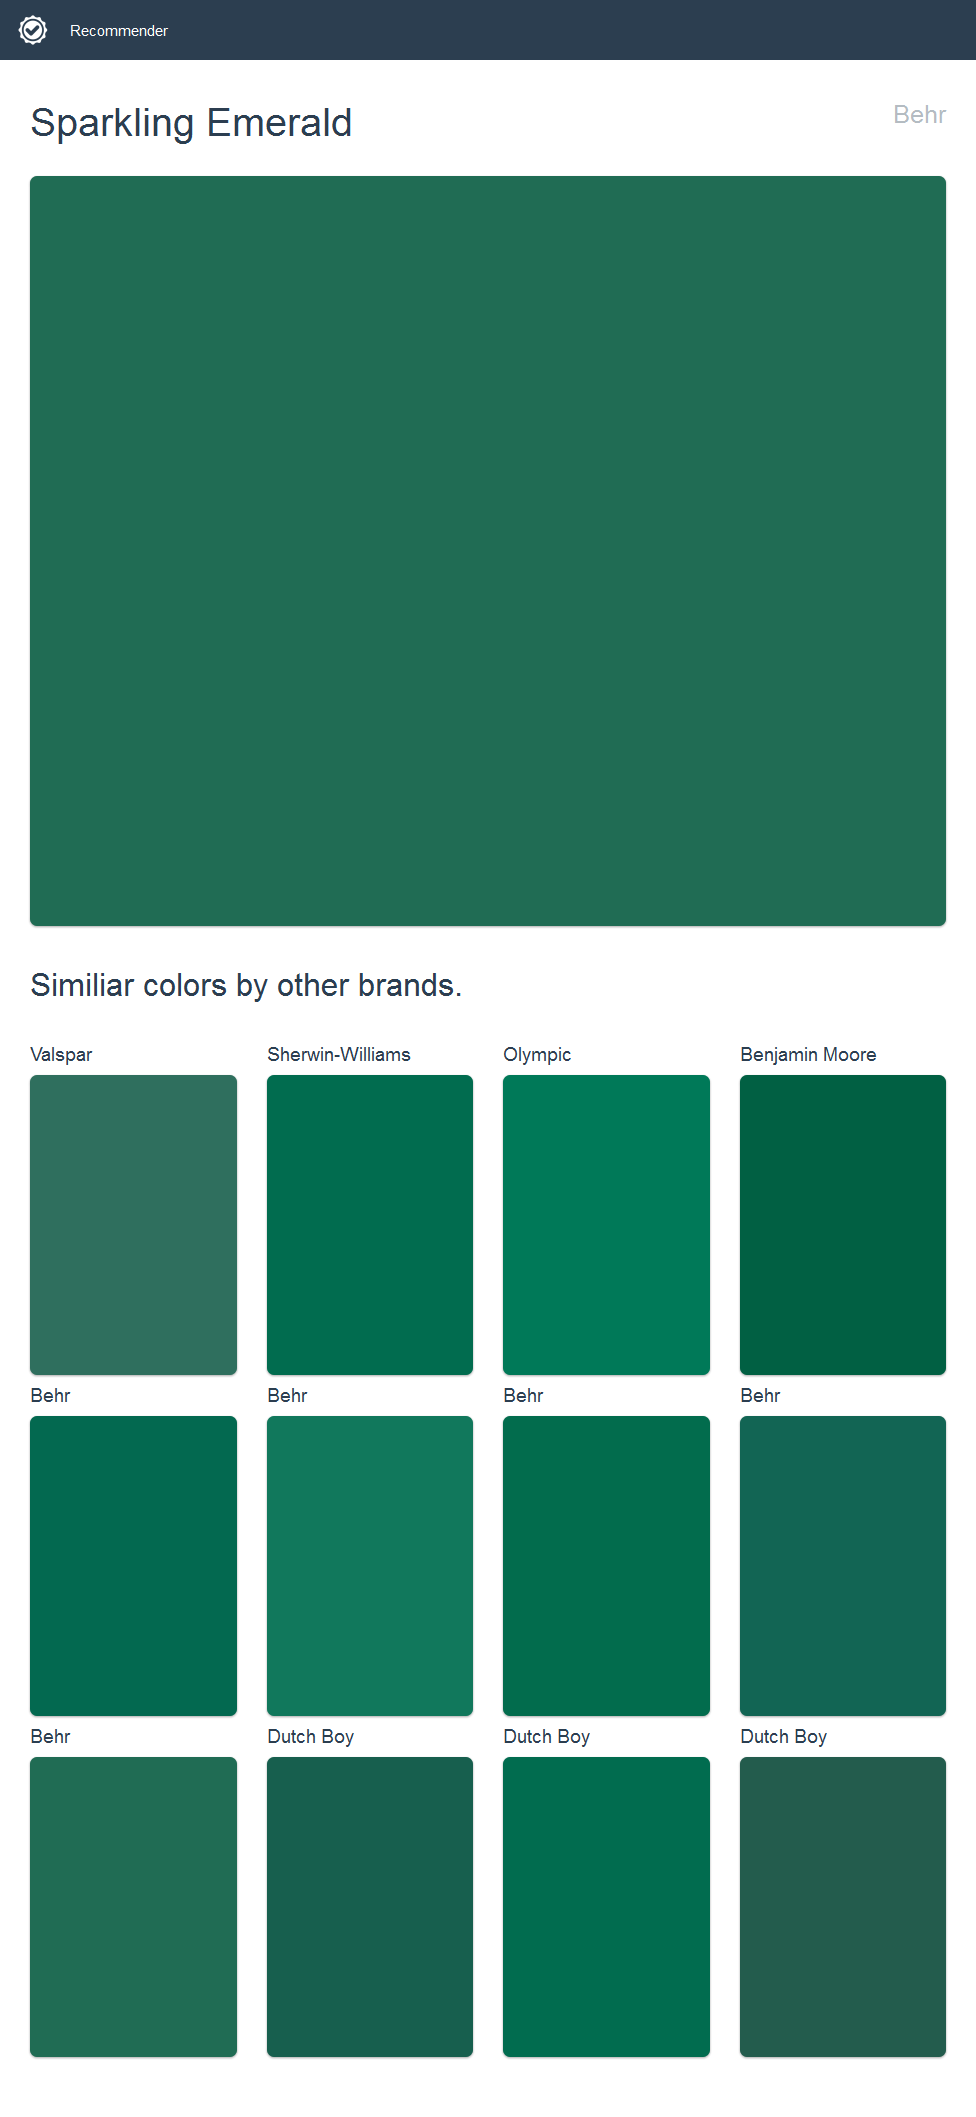 Sparkling emerald behr click the image to see similiar colors by sparkling emerald behr click the image to see similiar colors by other brands nvjuhfo Choice Image